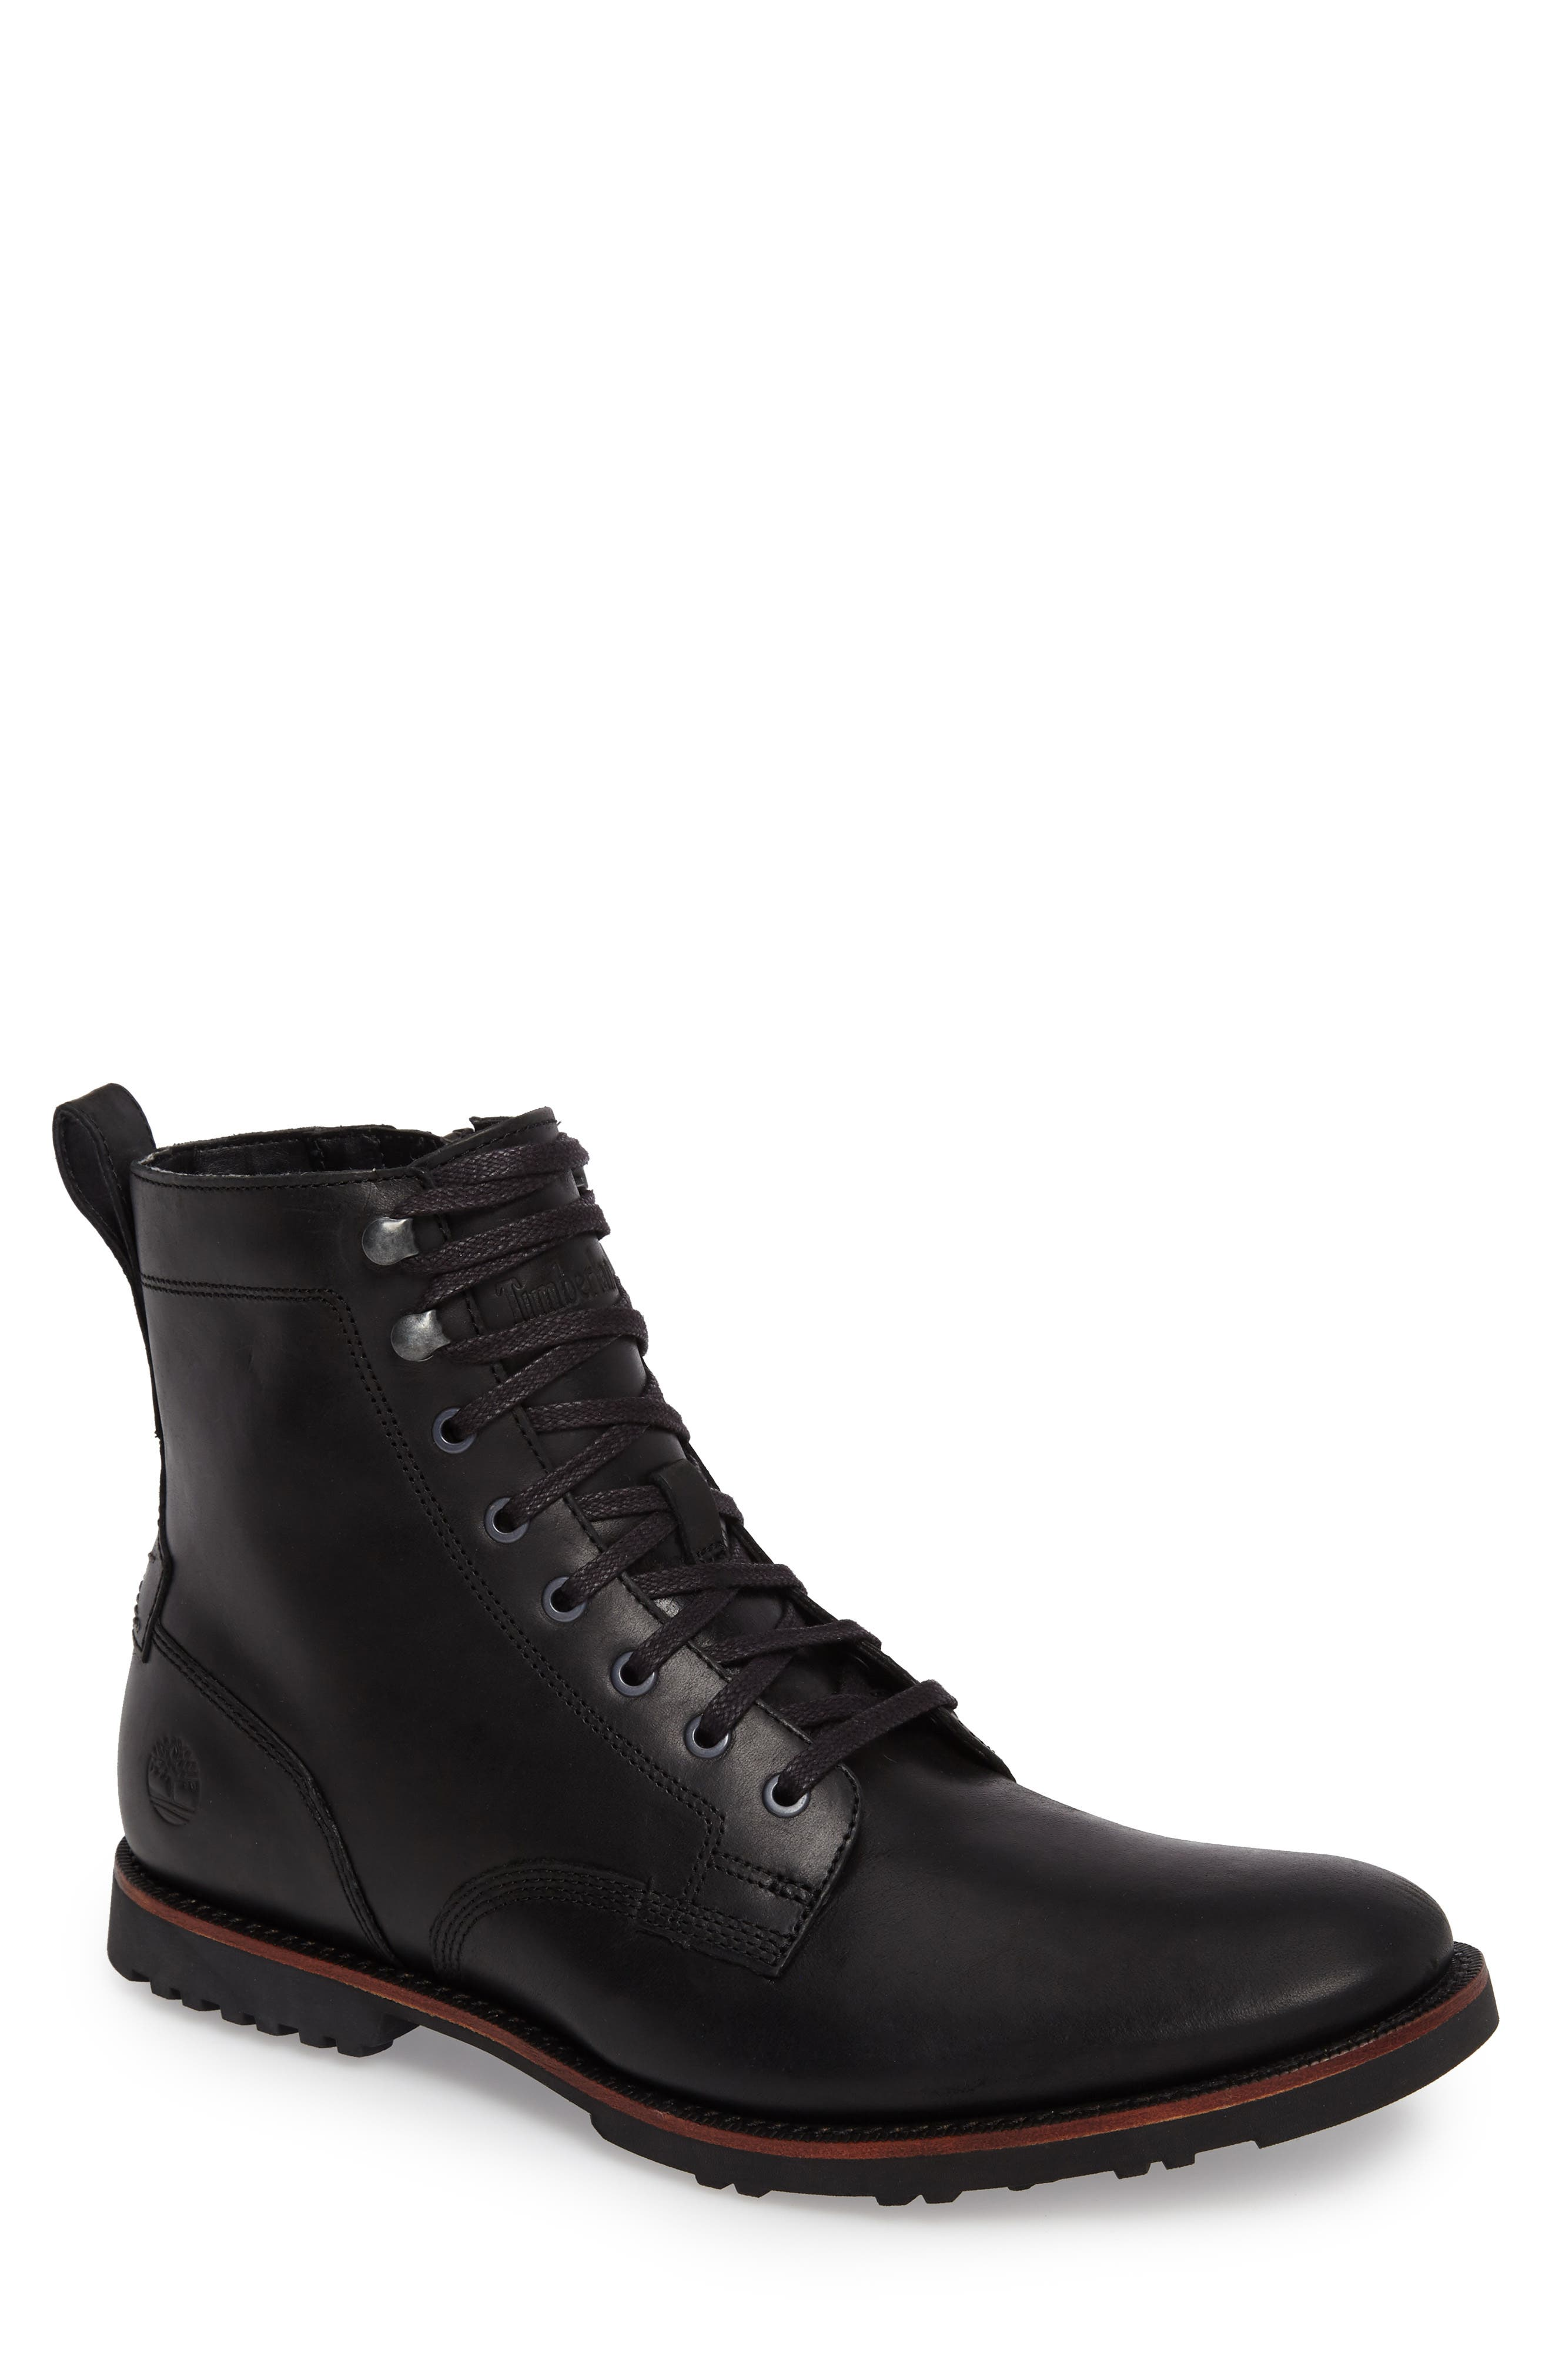 Kendrick Side Zip Leather Boot,                             Main thumbnail 1, color,                             001